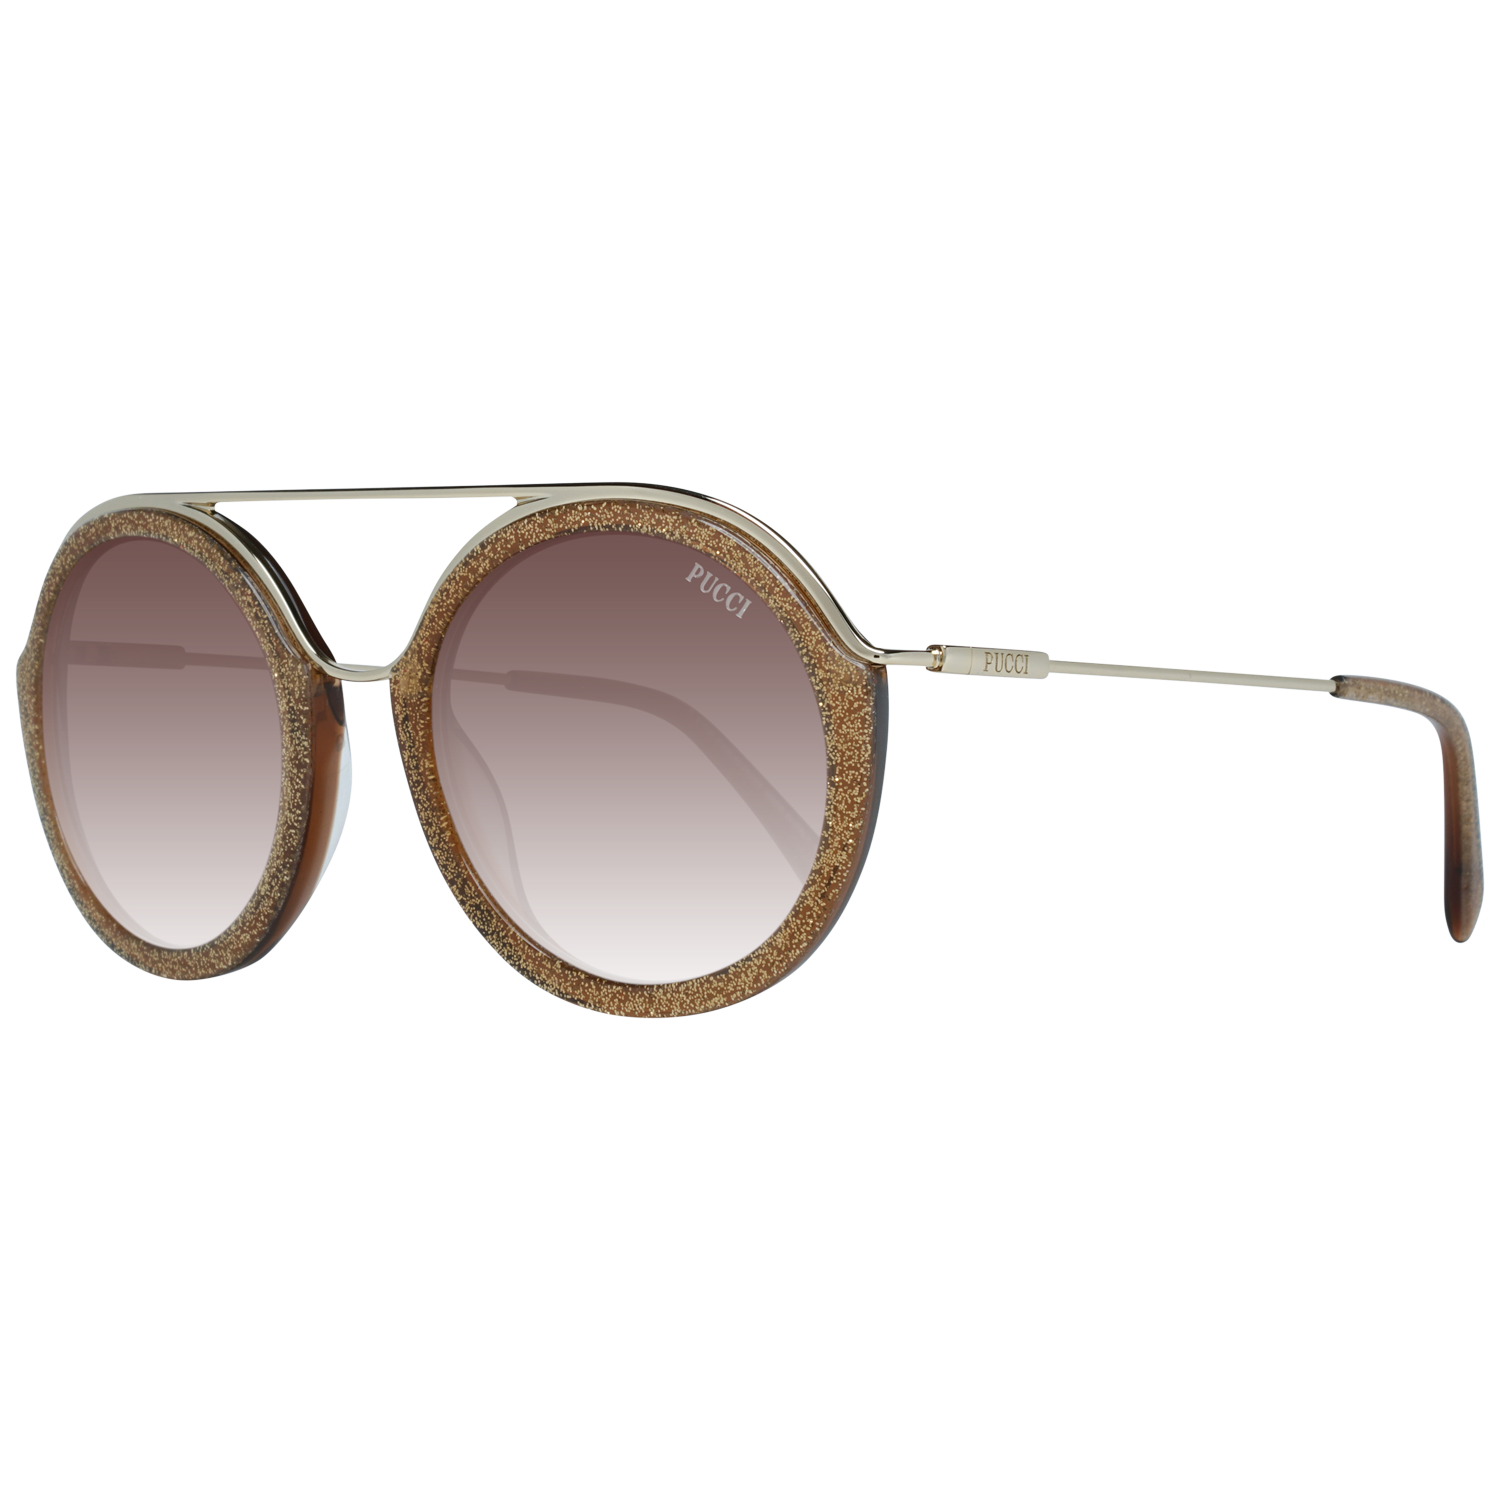 Emilio Pucci Sunglasses EP0013 47F 52 Women Gold